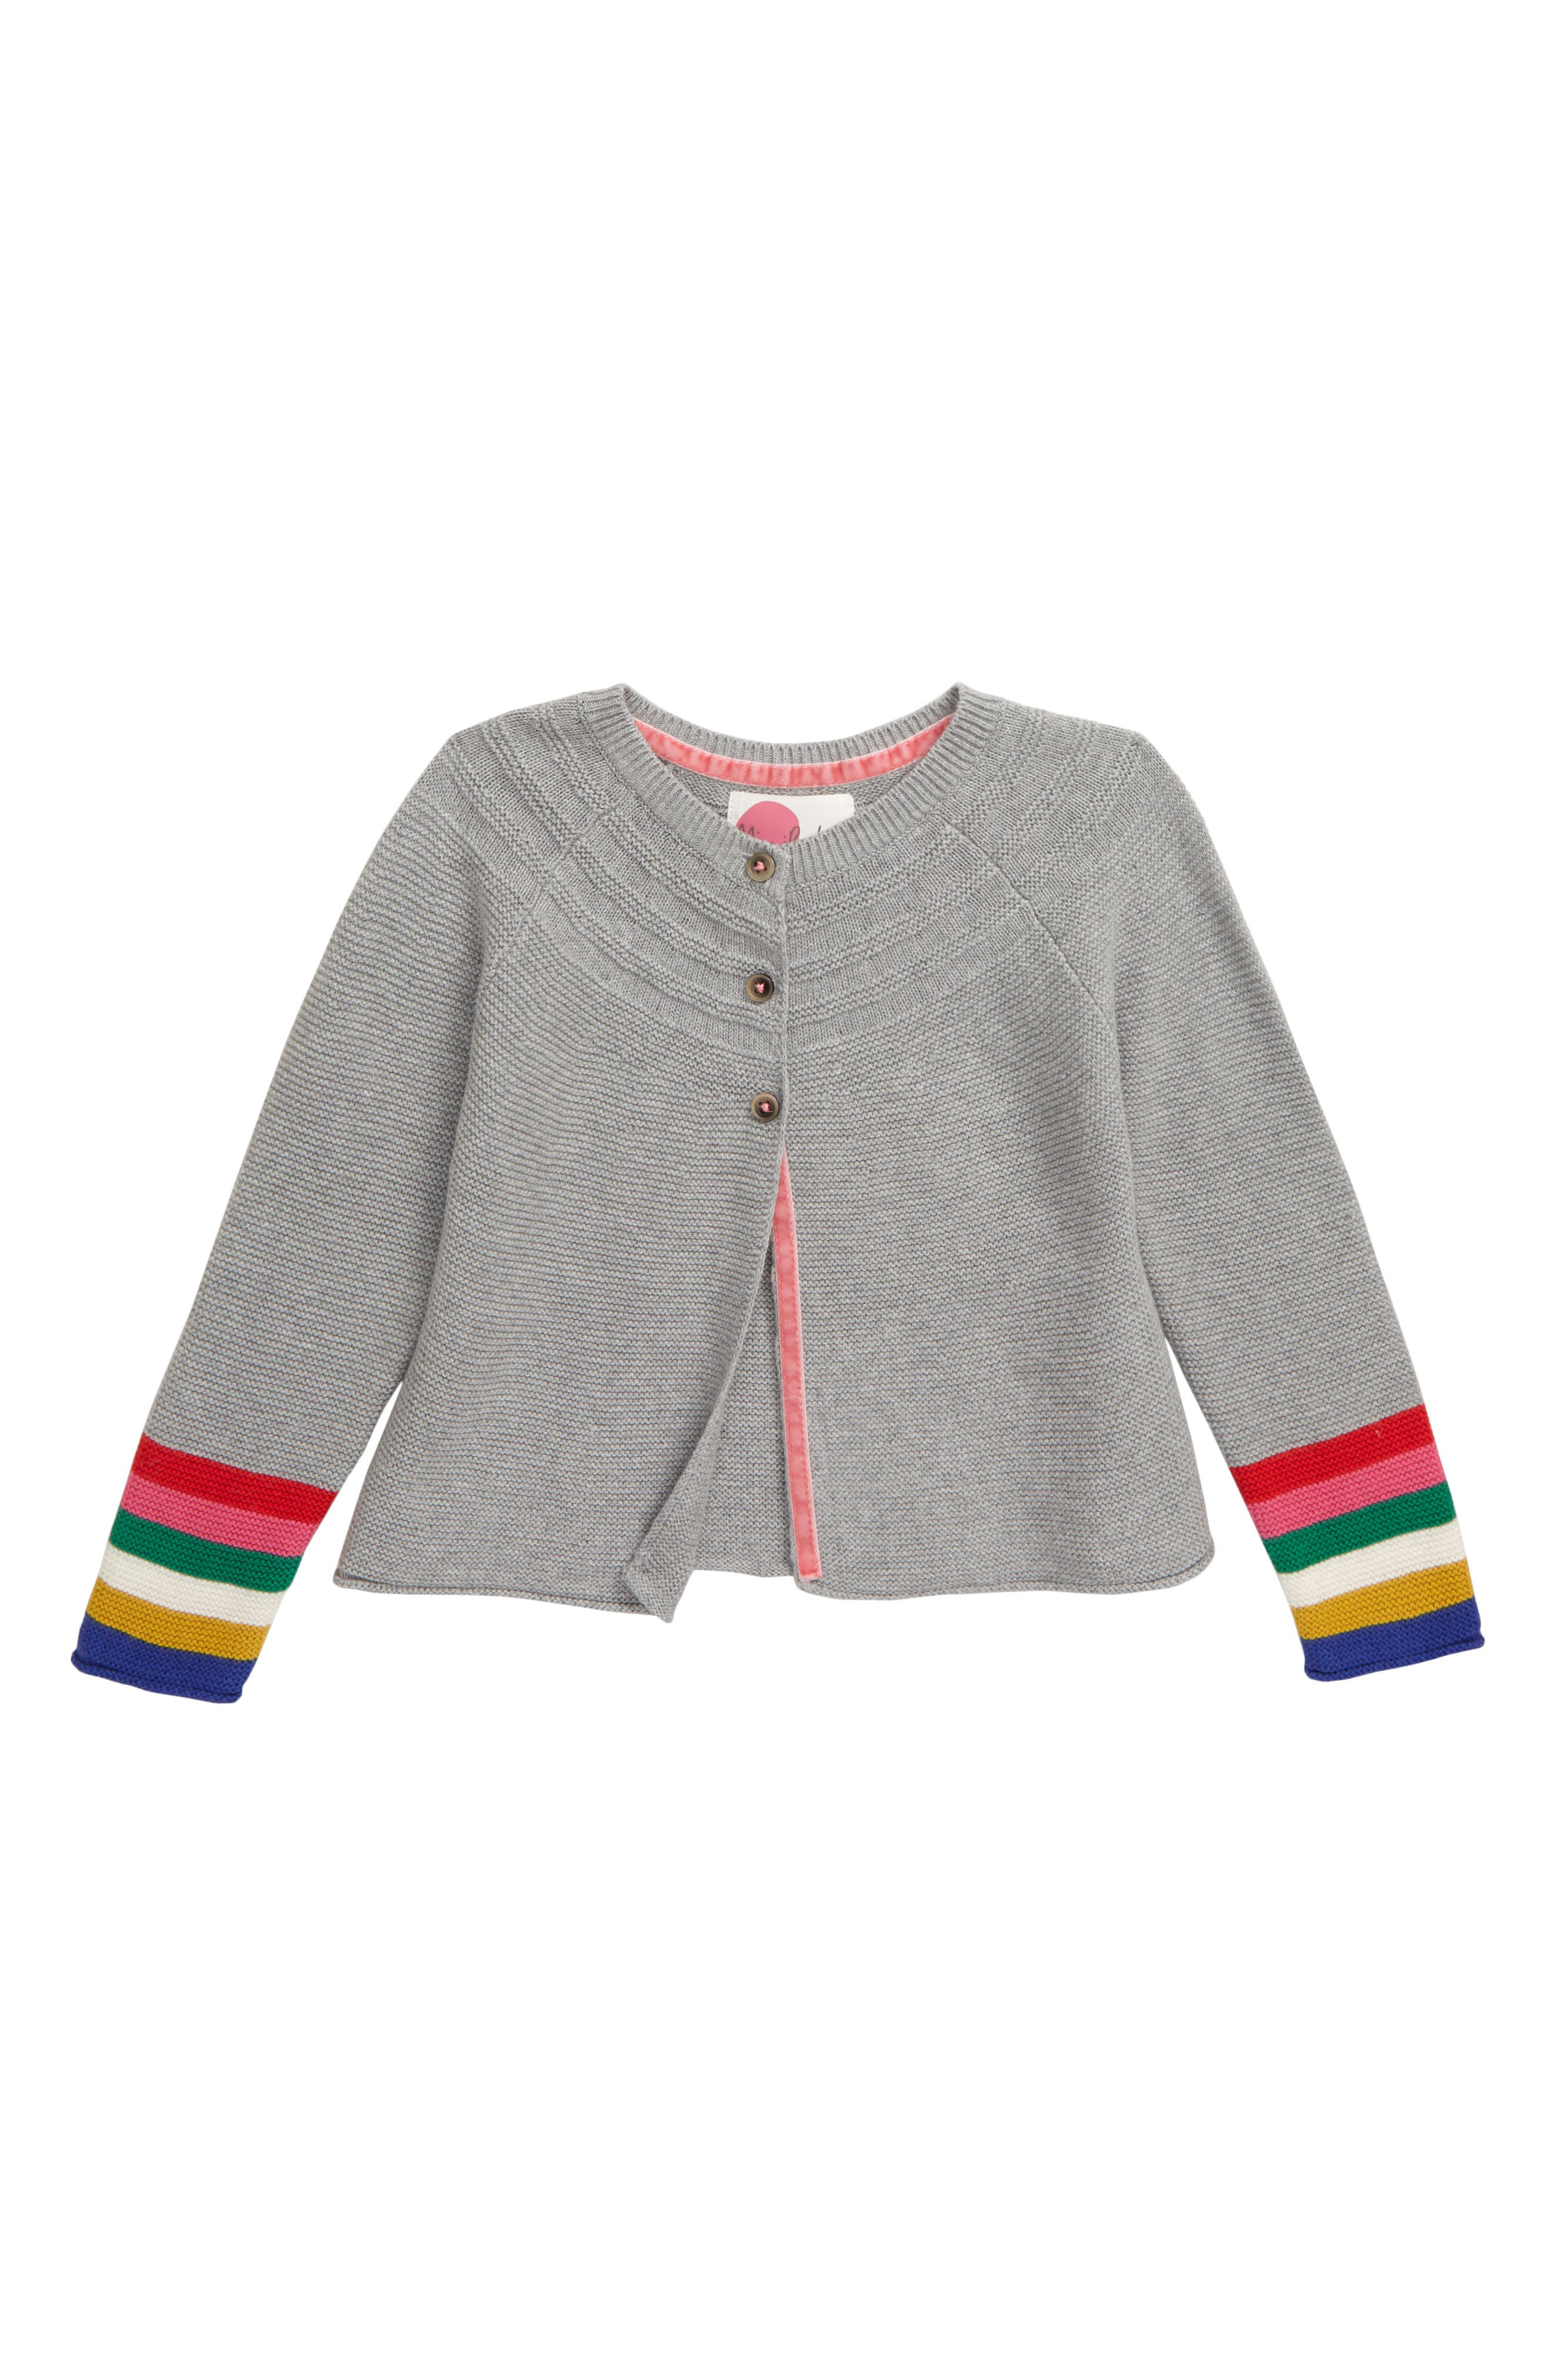 Mixed stitches bring eye-catching texture to a cute three-button cardigan knit from supersoft cotton yarn with a touch of cashmere. Style Name: Mini Boden Everyday Cardigan (Toddler Girls, Little Girls & Big Girls). Style Number: 5865769 3. Available in stores.